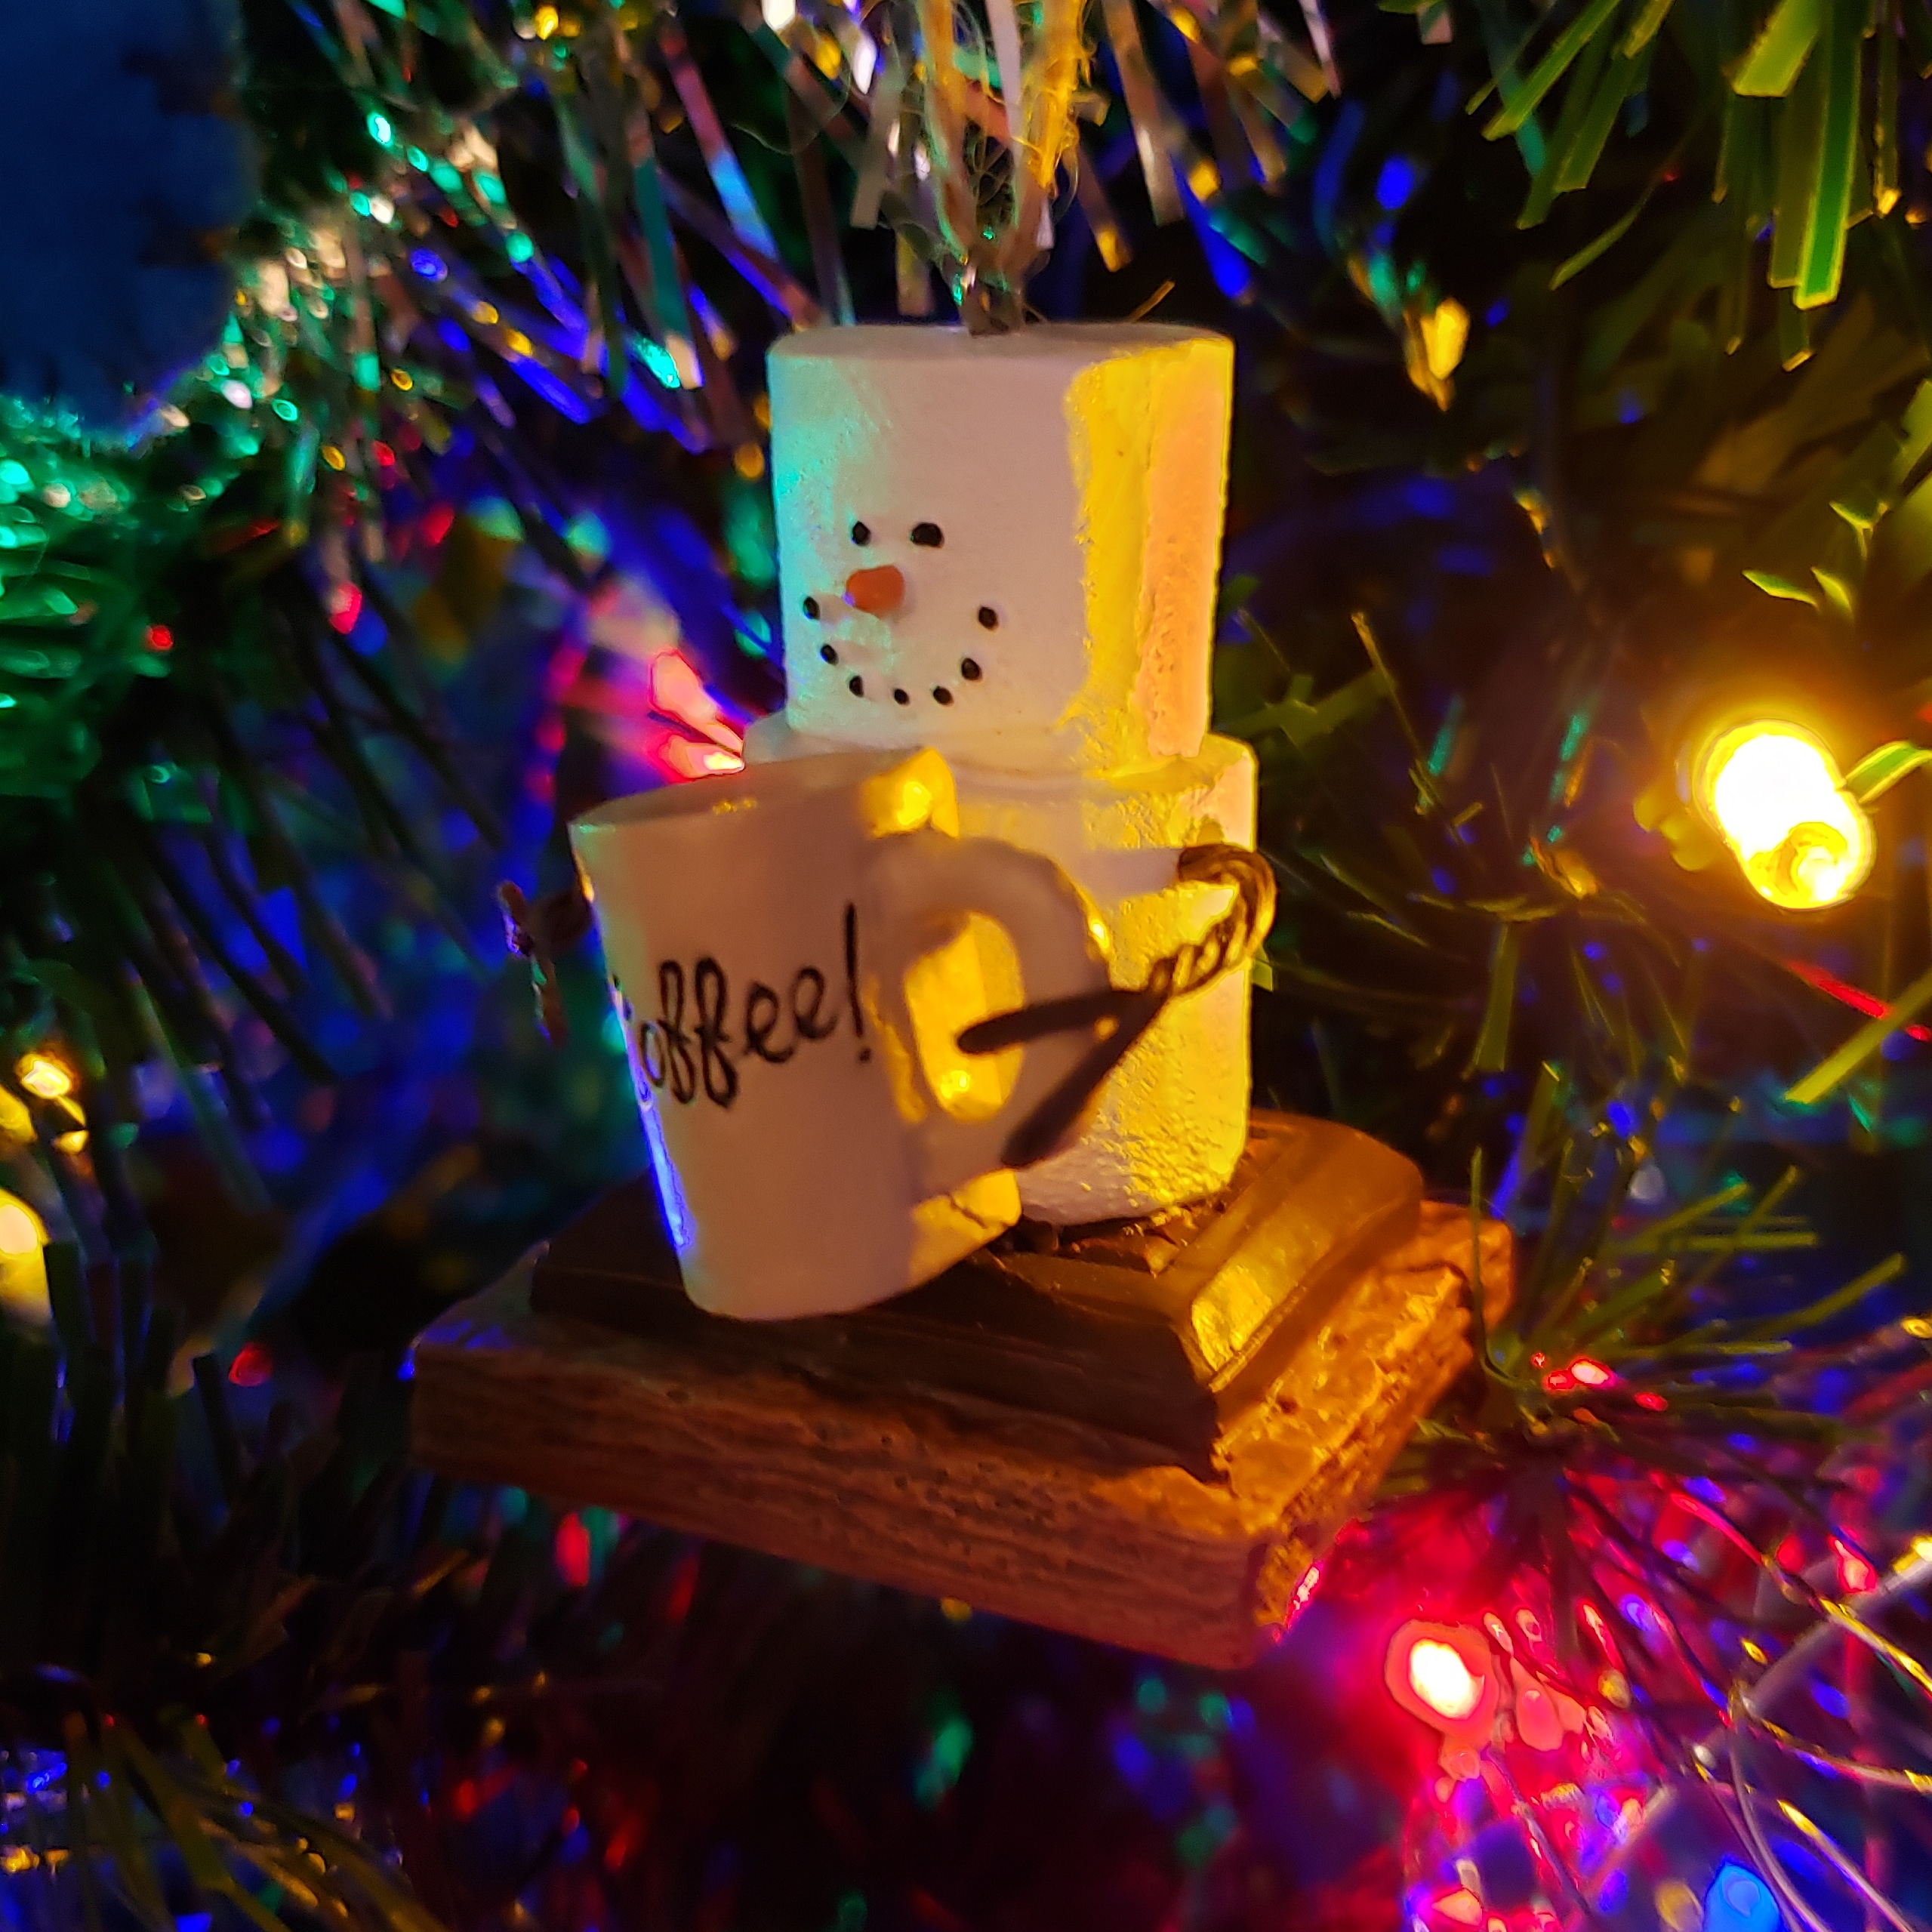 Marshmallow snowman Christmas ornament